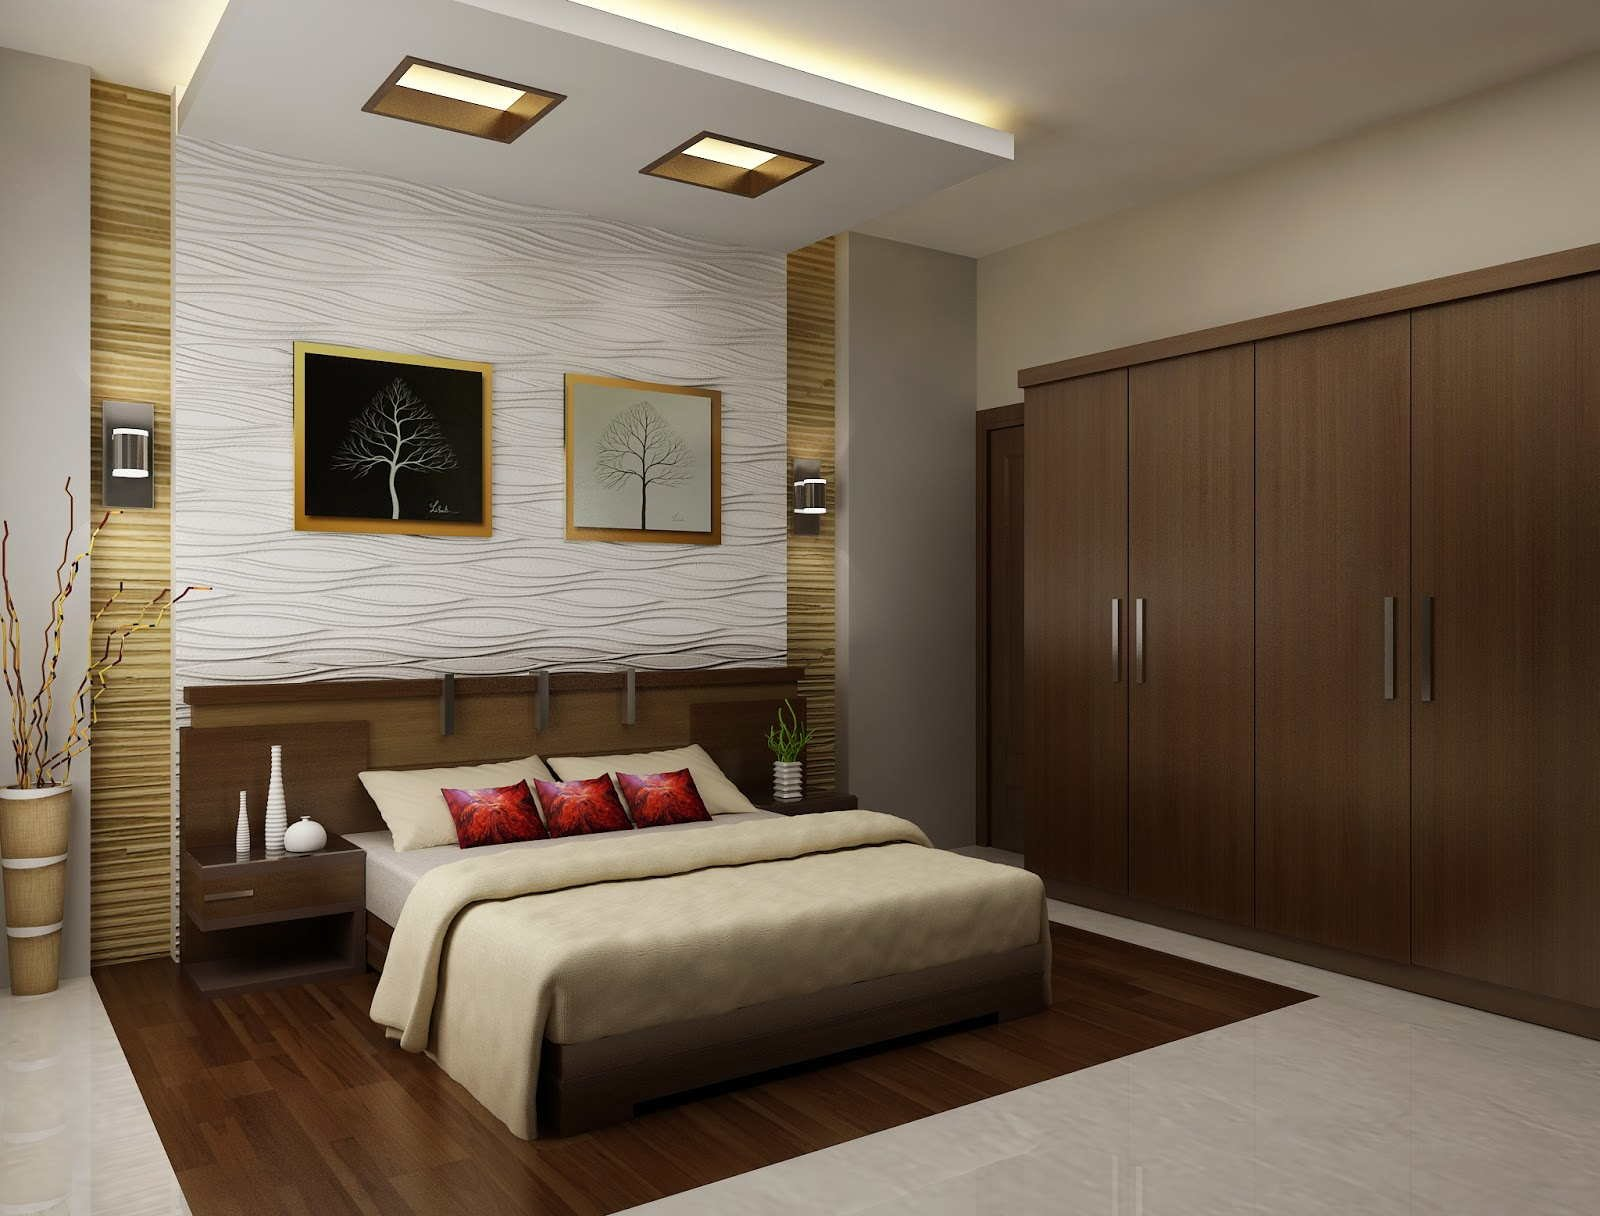 Best 11 Attractive Bedroom Design Ideas That Will Make Your Home Awesome With Pictures